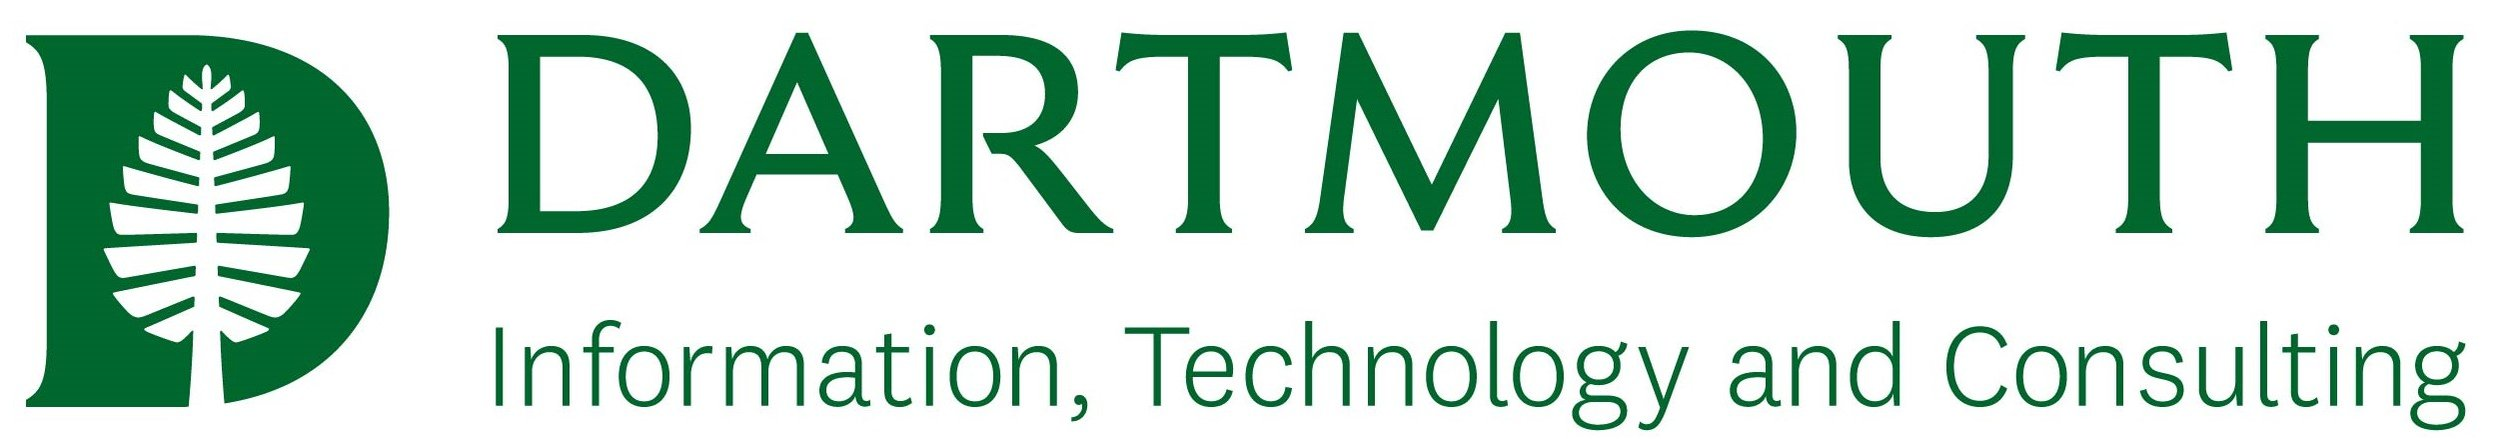 ITC_logo_CMYK_green_on_white_cropped.jpg